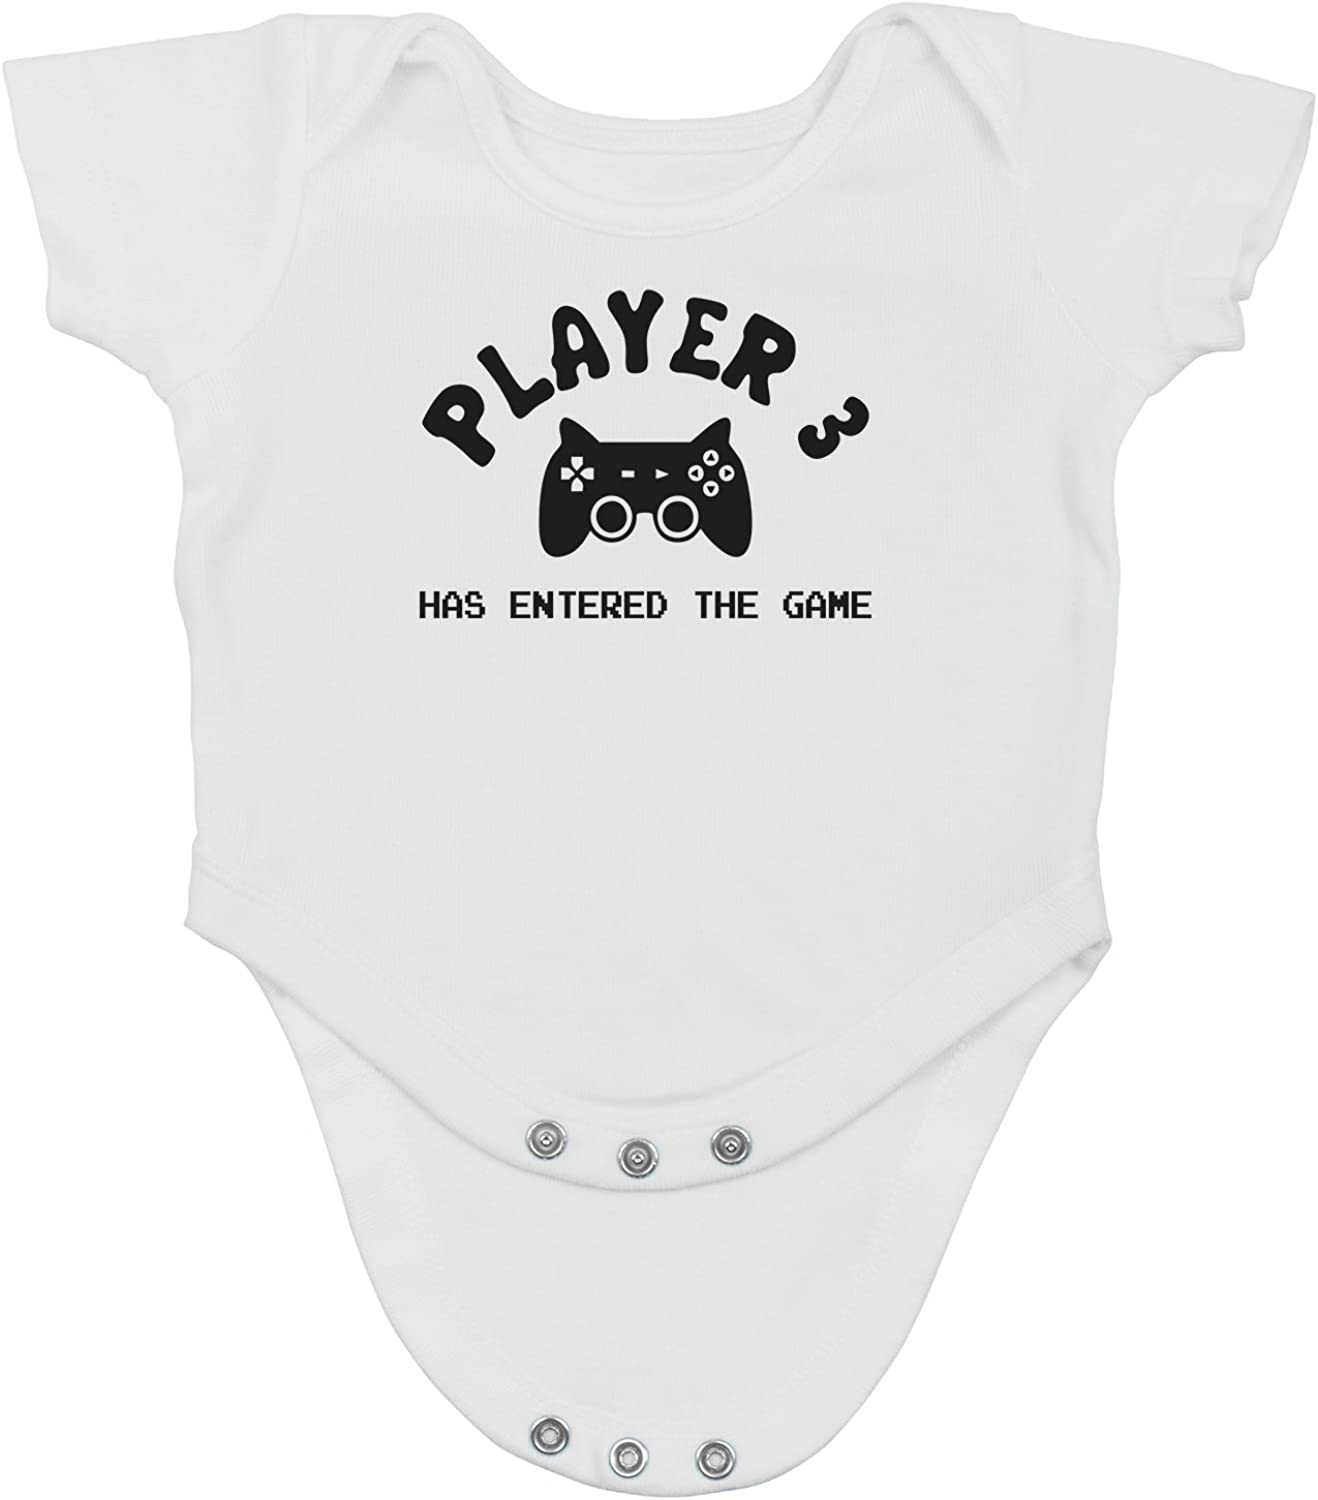 Player 3 Has Entered The Game - Funny Cute Third Child Gamer Infant Creeper, One-Piece Baby Bodysuit